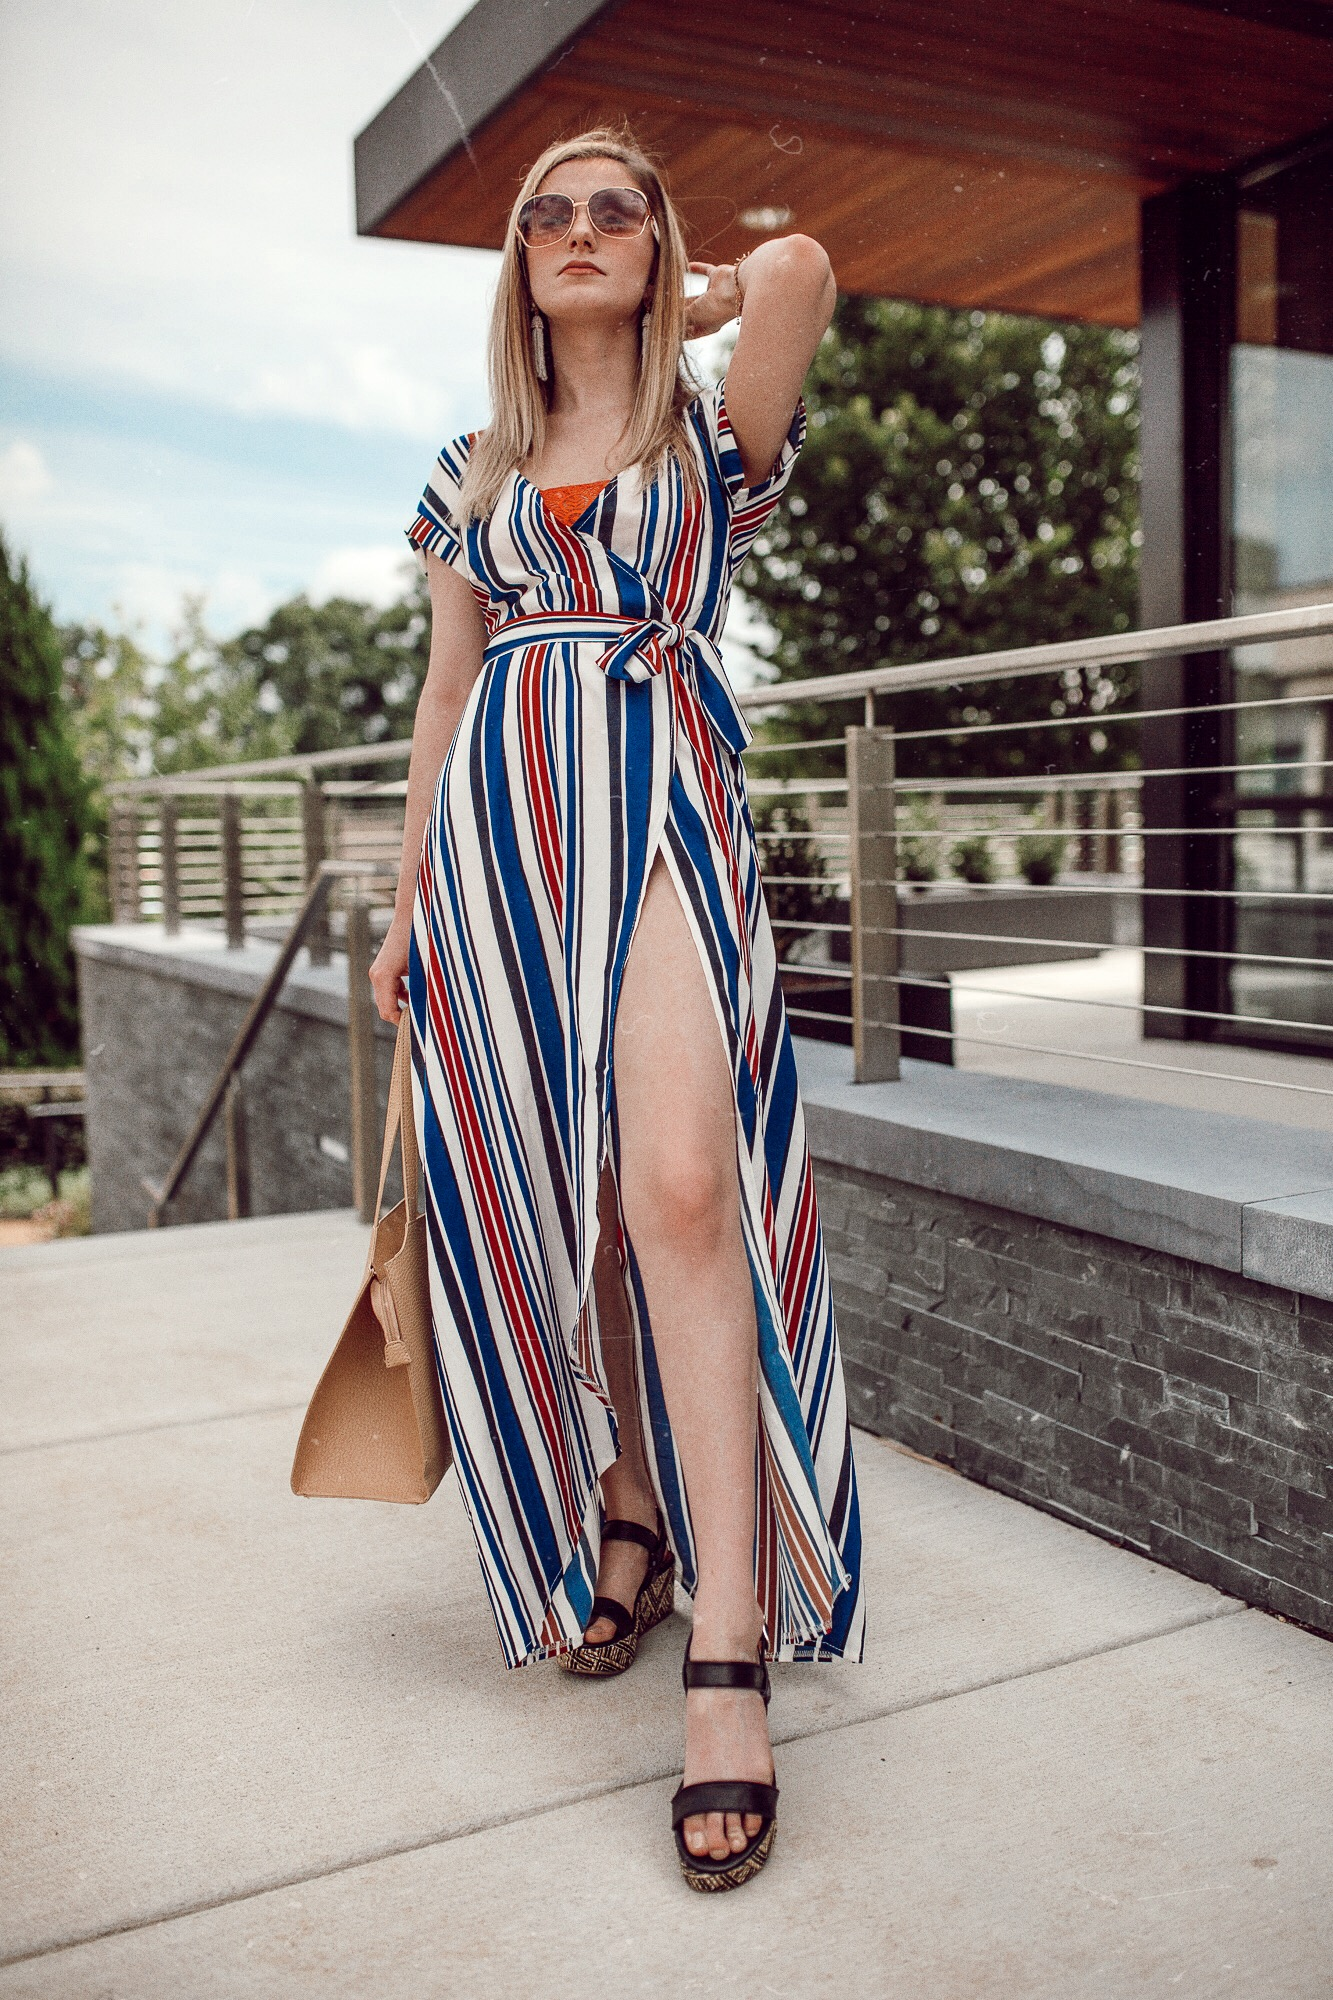 North Carolina fashion and lifestyle blogger Jessica Linn wearing a striped maxi wrap dress from Sugarhigh clothing, and platform sandals from Target.